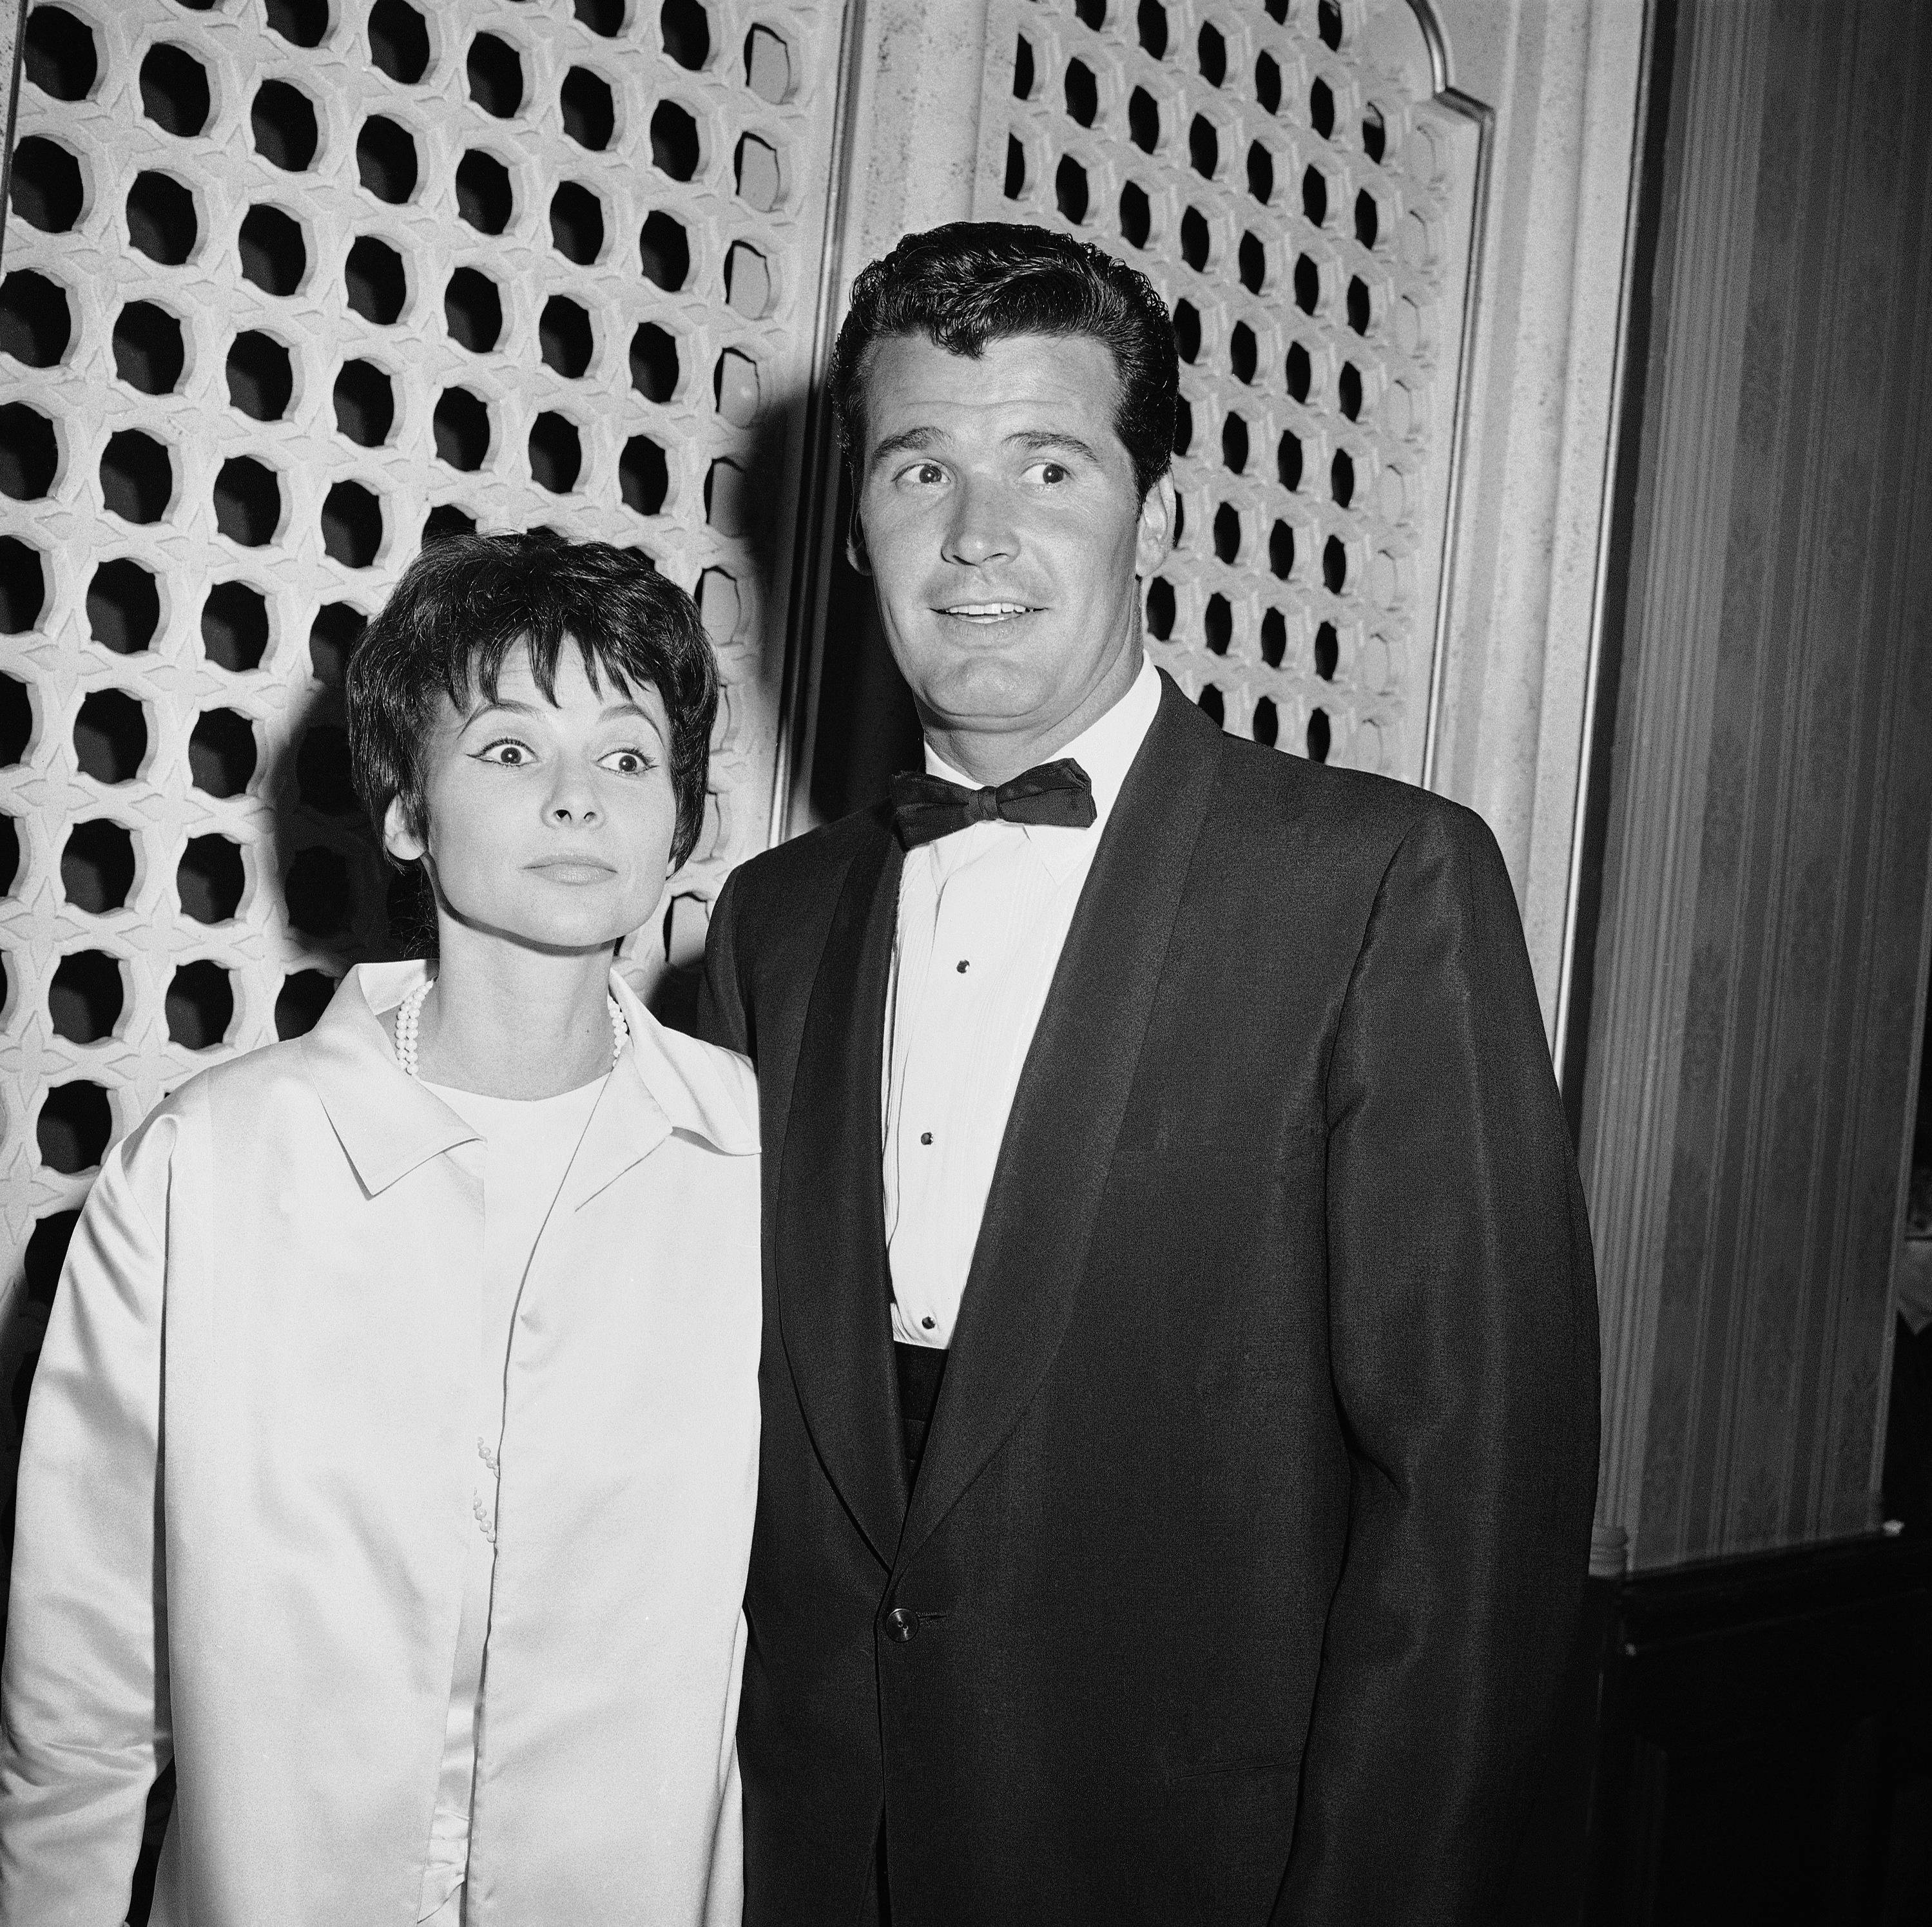 "Jim Garner of the TV program ?Maverick? arrives with his wife Lois Clarke at the Emmy Awards, in this April 15, 1958 file photo taken in Hollywood, Los Angeles, Calif. Actor James Garner, wisecracking star of TV's ""Maverick"" who went on to a long career on both small and big screen, died Saturday July 19, 2014 according to Los angeles police. He was 86."